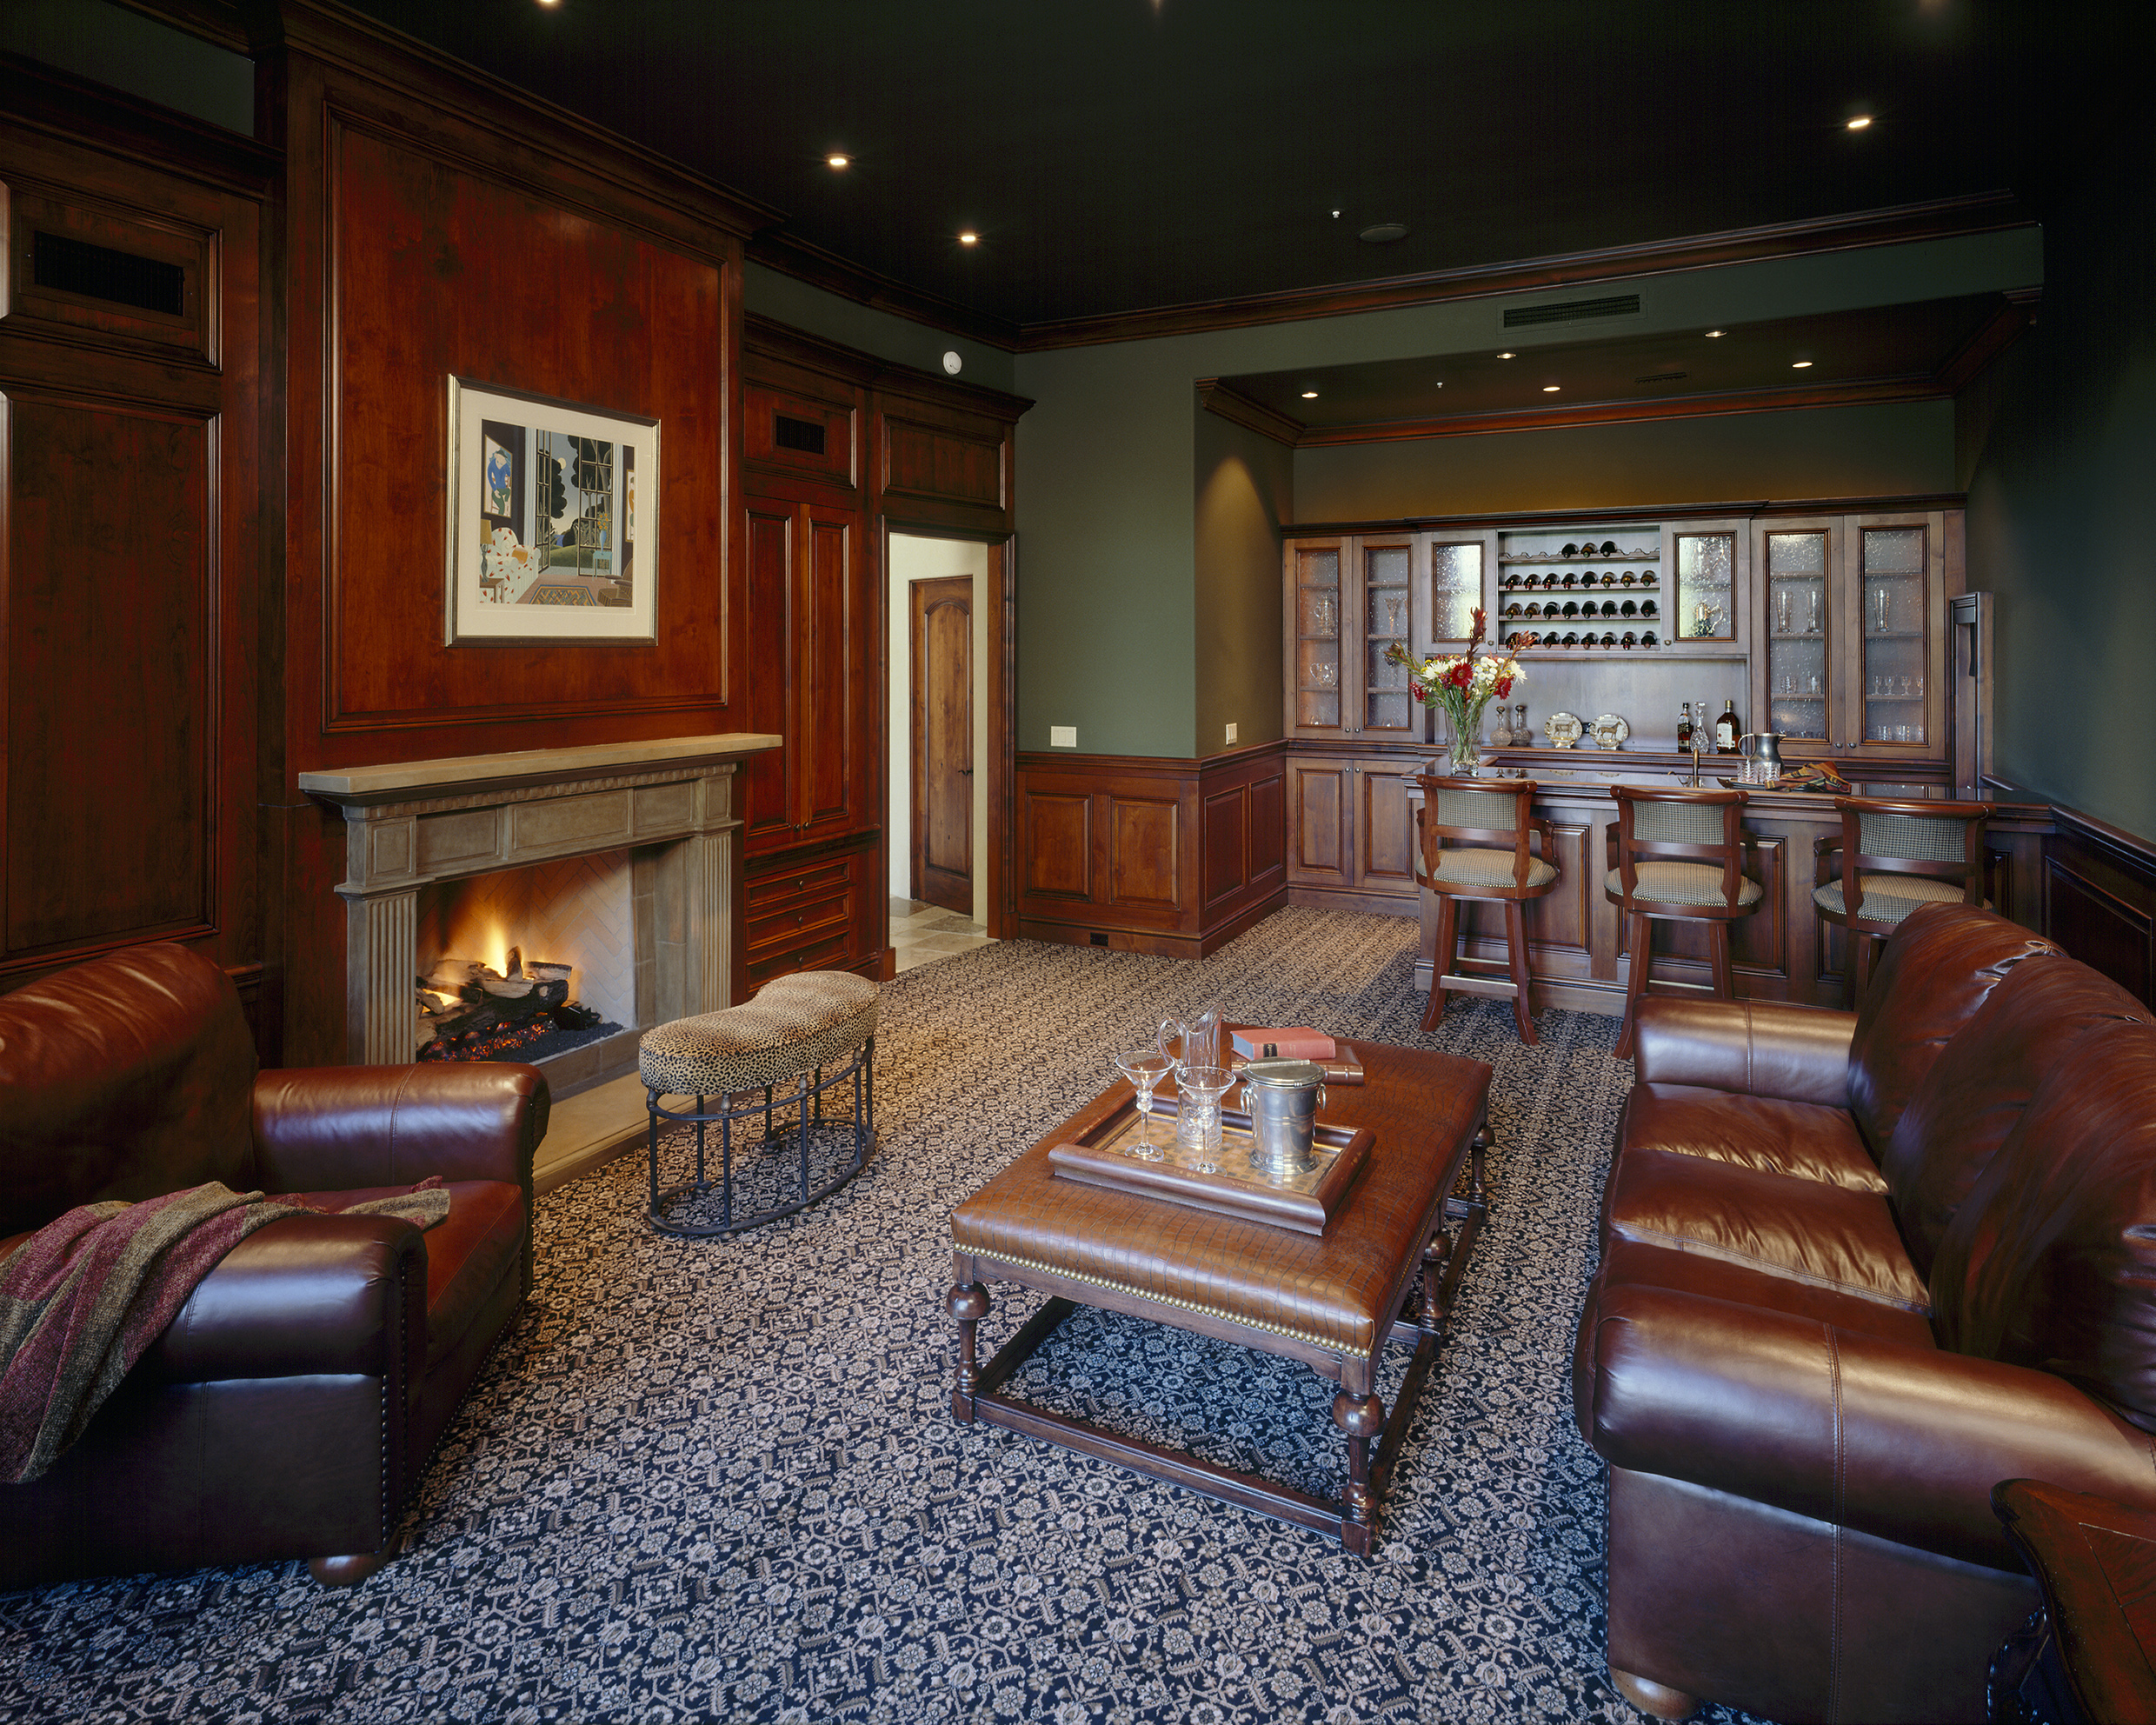 Boston Room, Boston Bar, Clubroom, Clubroom cabinetry, Man cave, man cave cabinets, exclusive finish, stain and glaze finish, wainscoting, crown moulding,